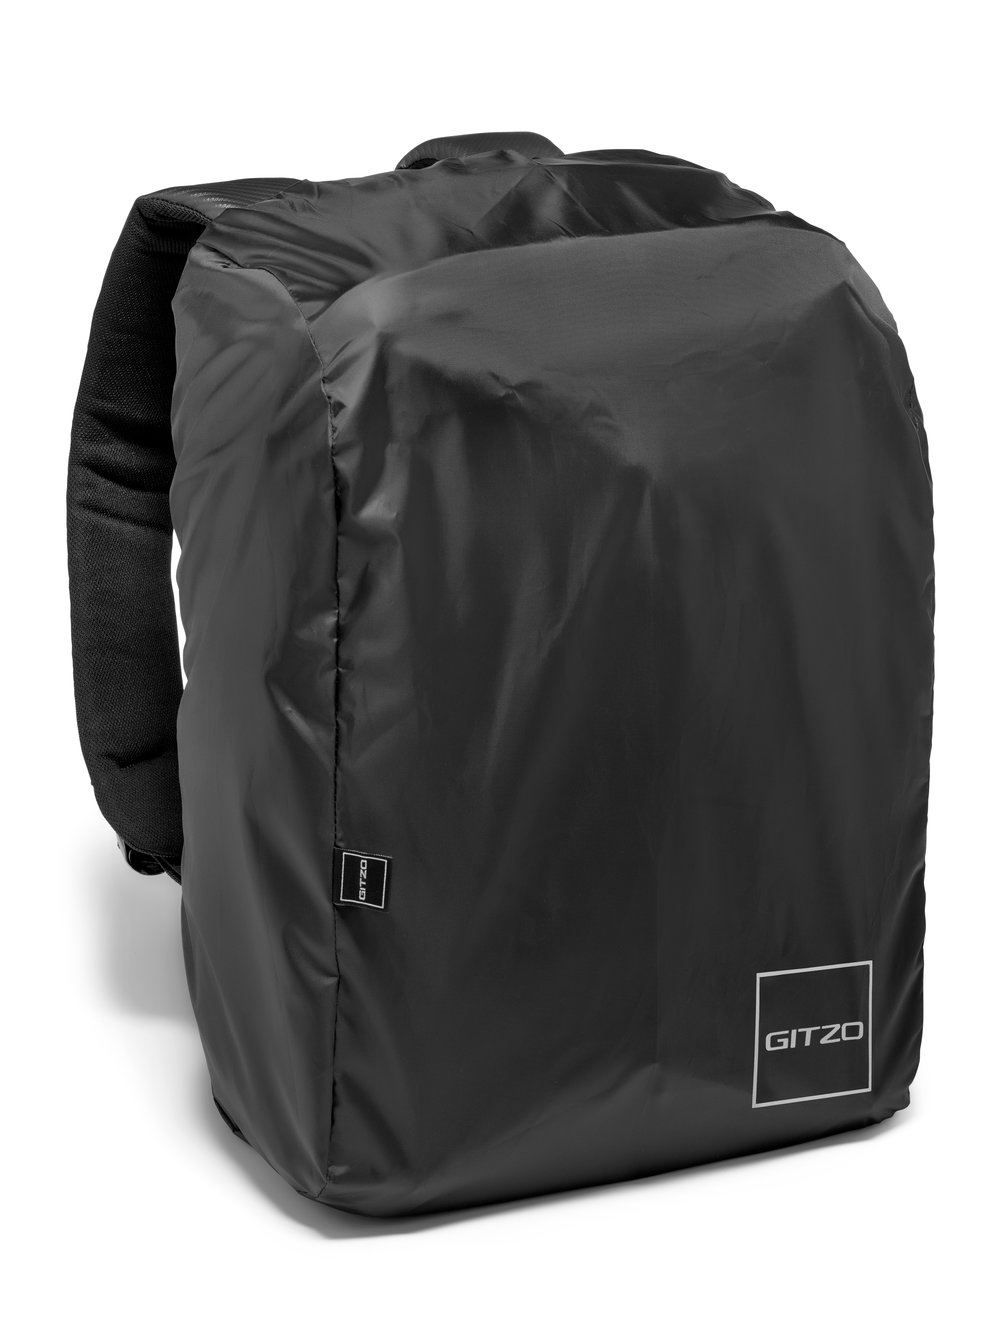 HR-GITZO_camera_bag_GCB100BP_raincover.jpg